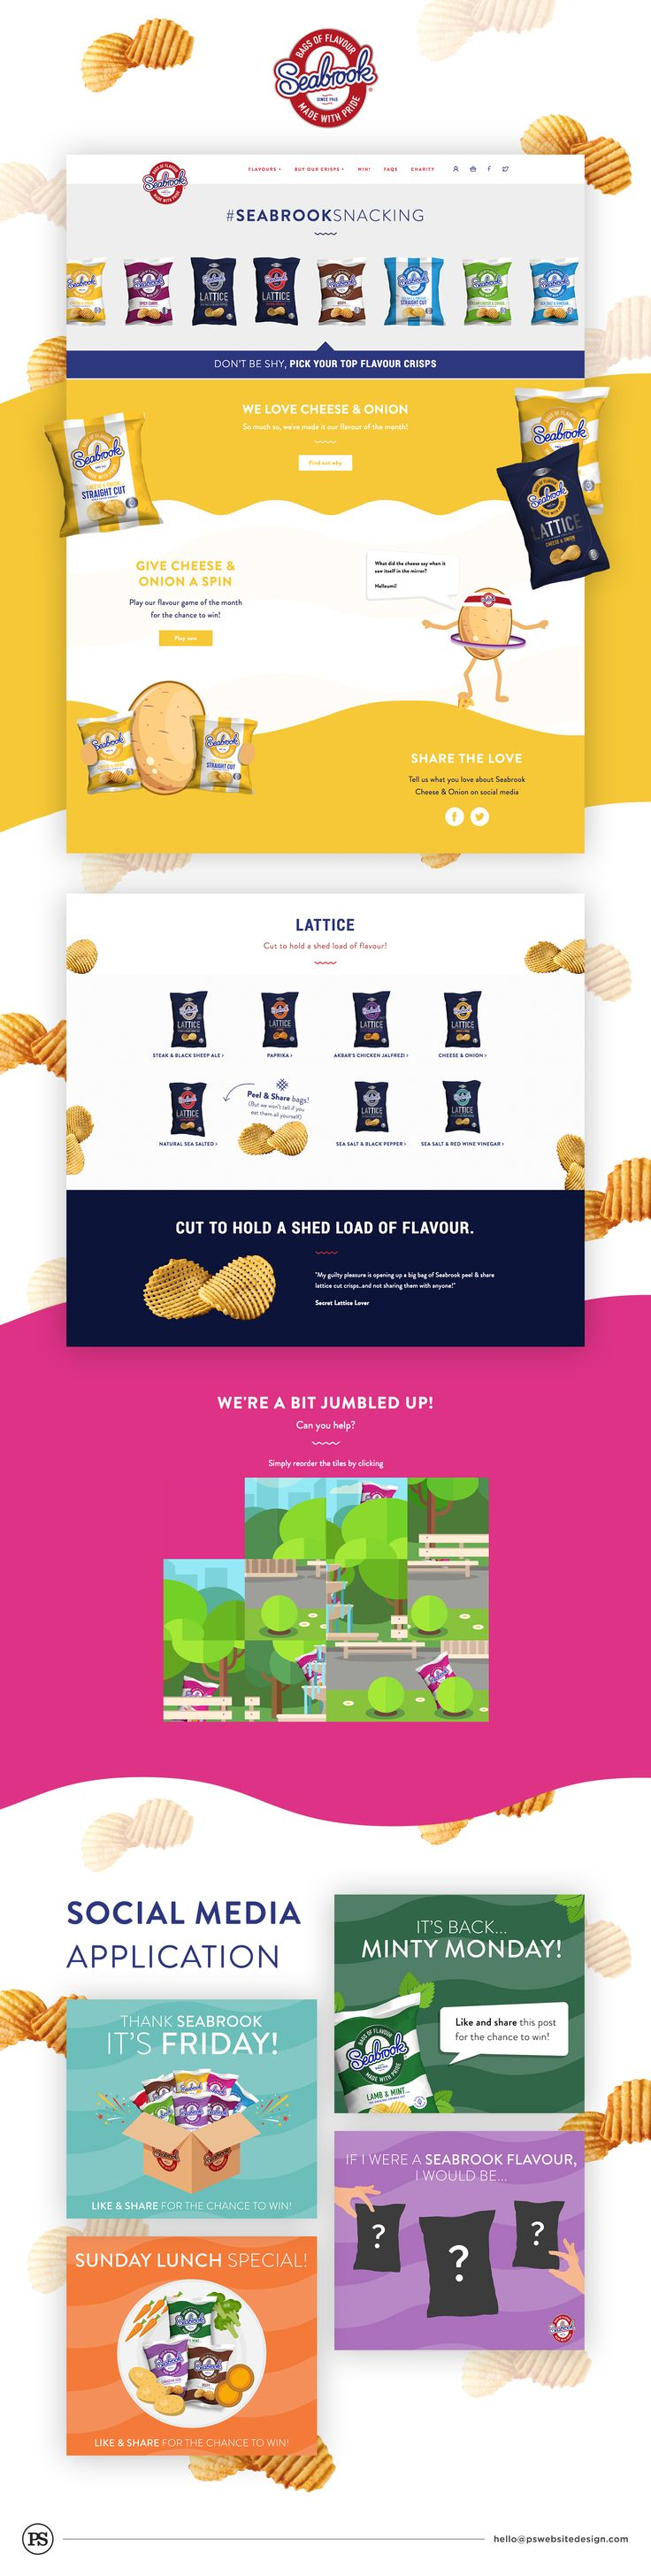 We are very happy to have worked with Seabrook Crisps on this website redesign project and we're super excited for what we have planned with them in the future.